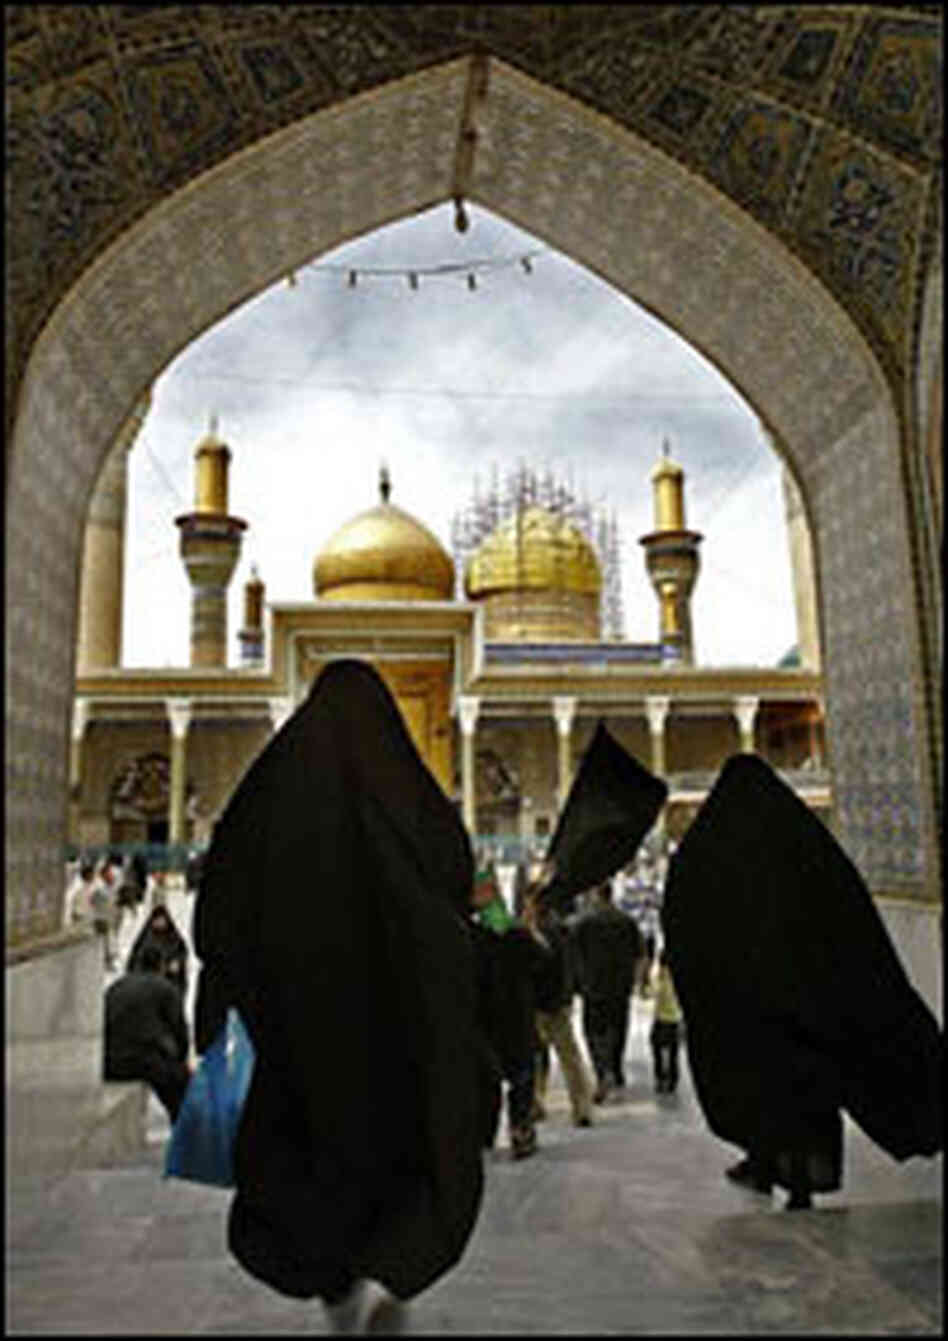 Iraqi women visit the shrine of Imam al-Kazem in Baghdad.